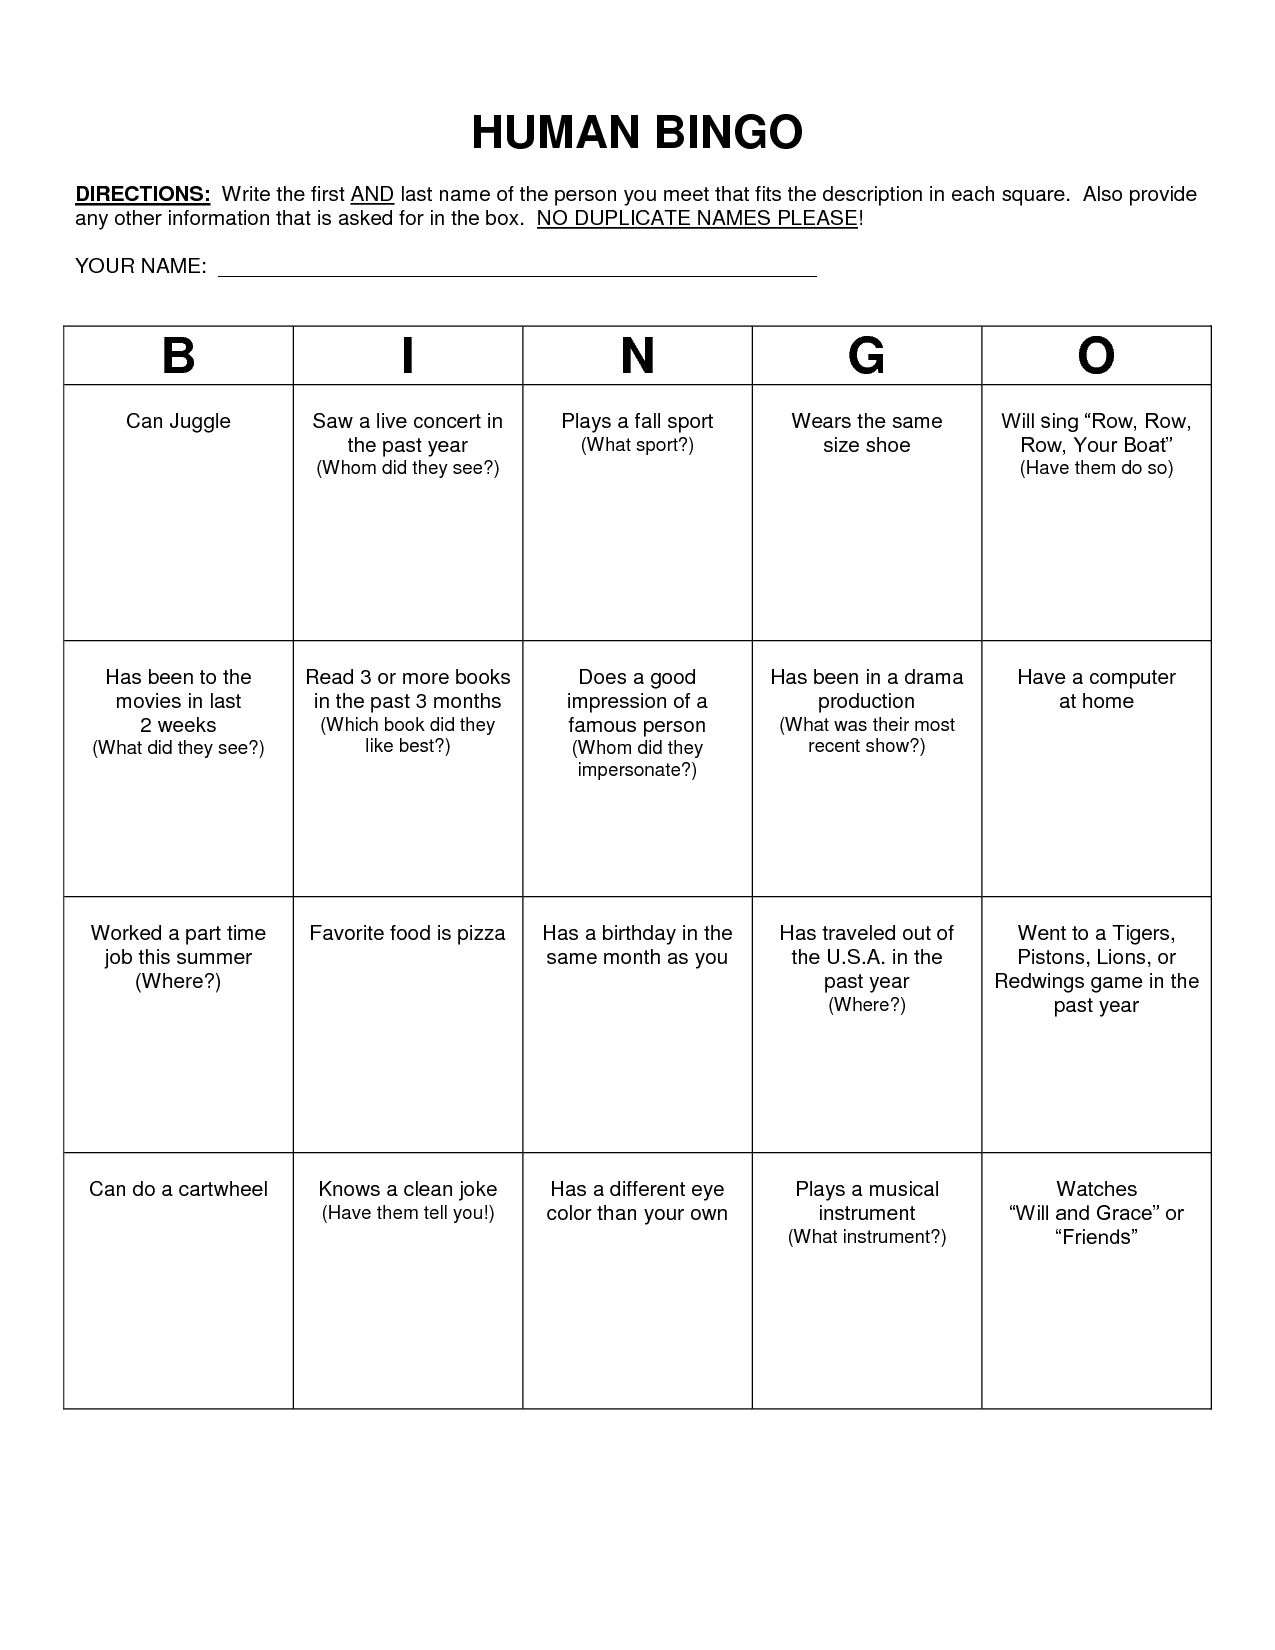 Human Bingo Scavenger Hunt Template | Education | Pinterest